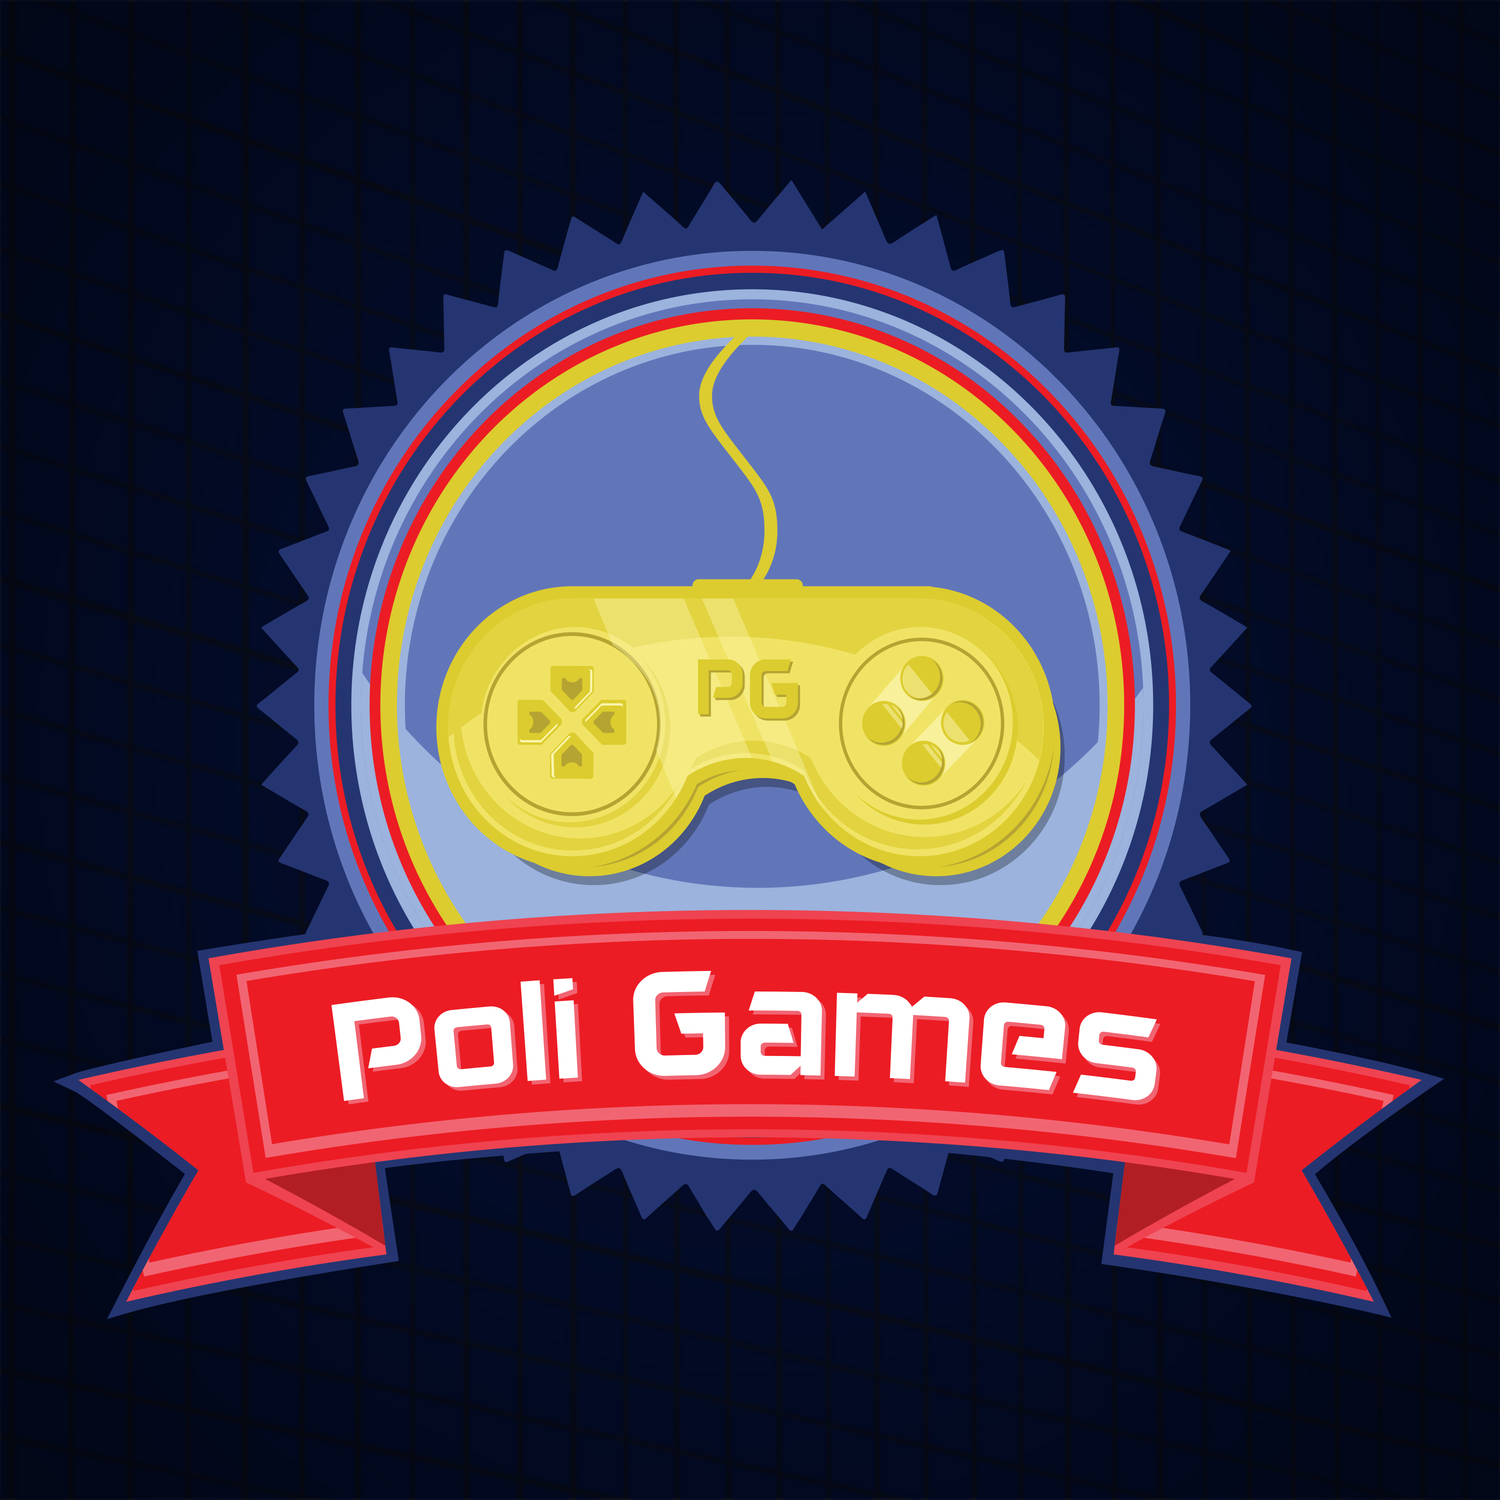 Poli Games - The Poli Network